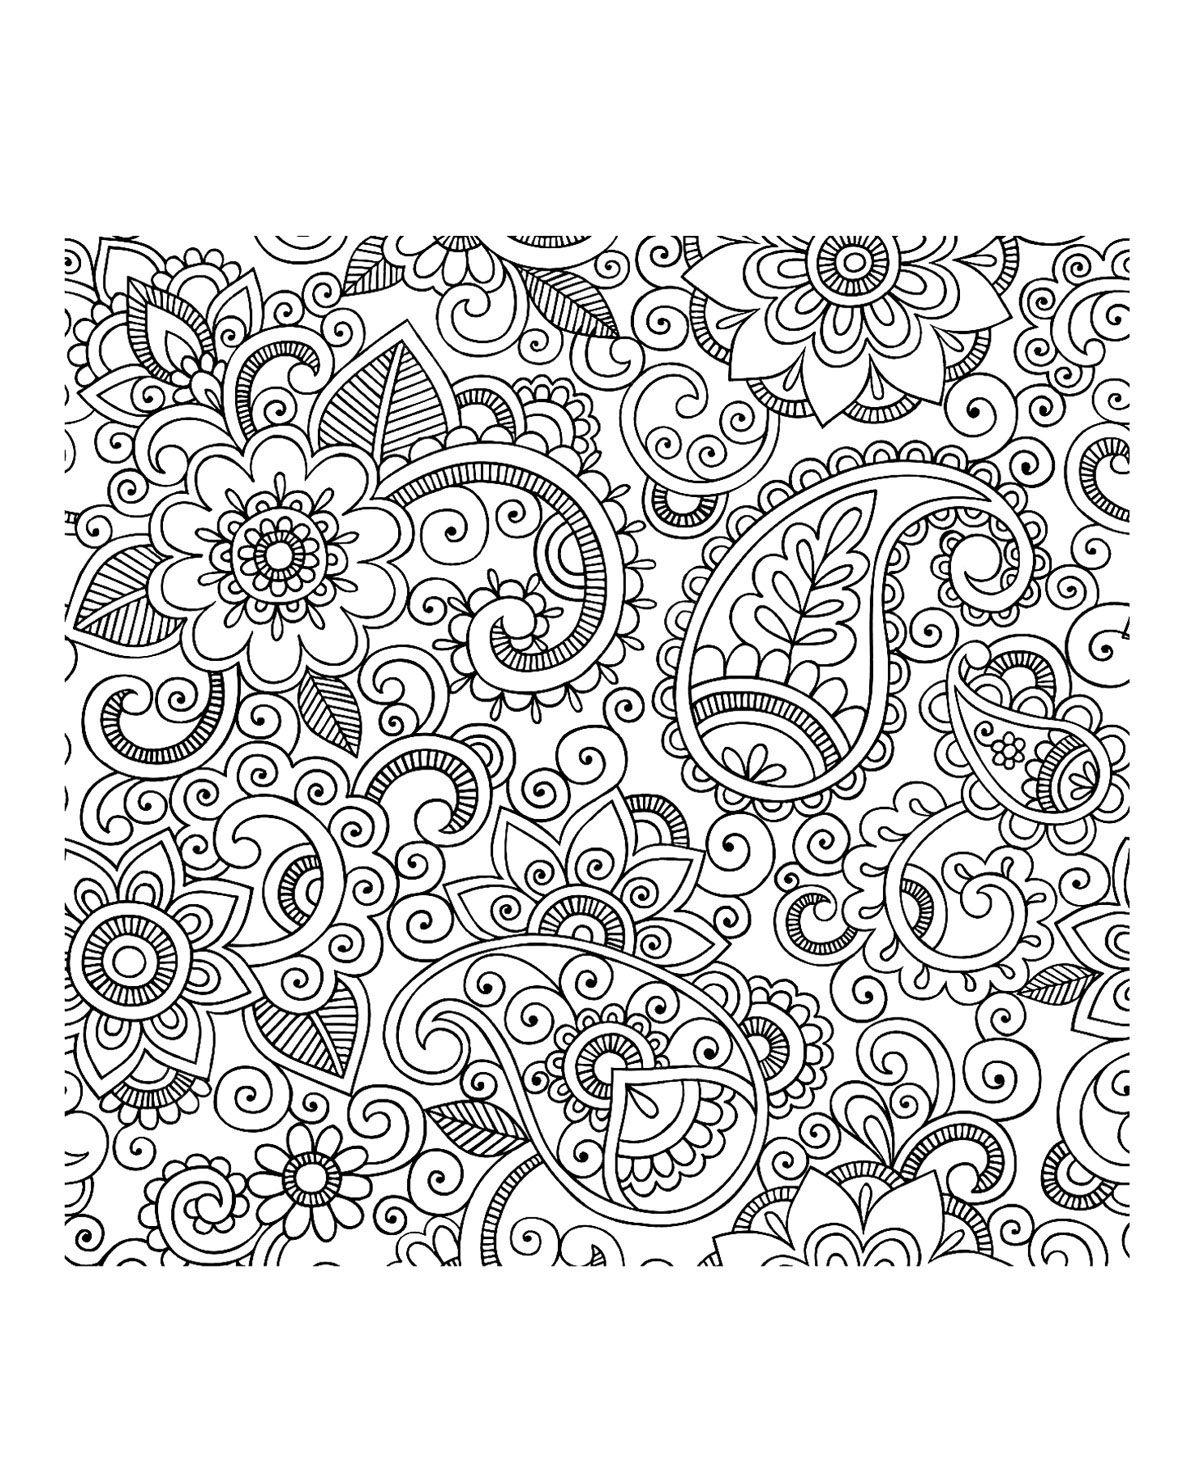 free printable paisley coloring pages paisley coloring pages coloring home printable paisley coloring free pages